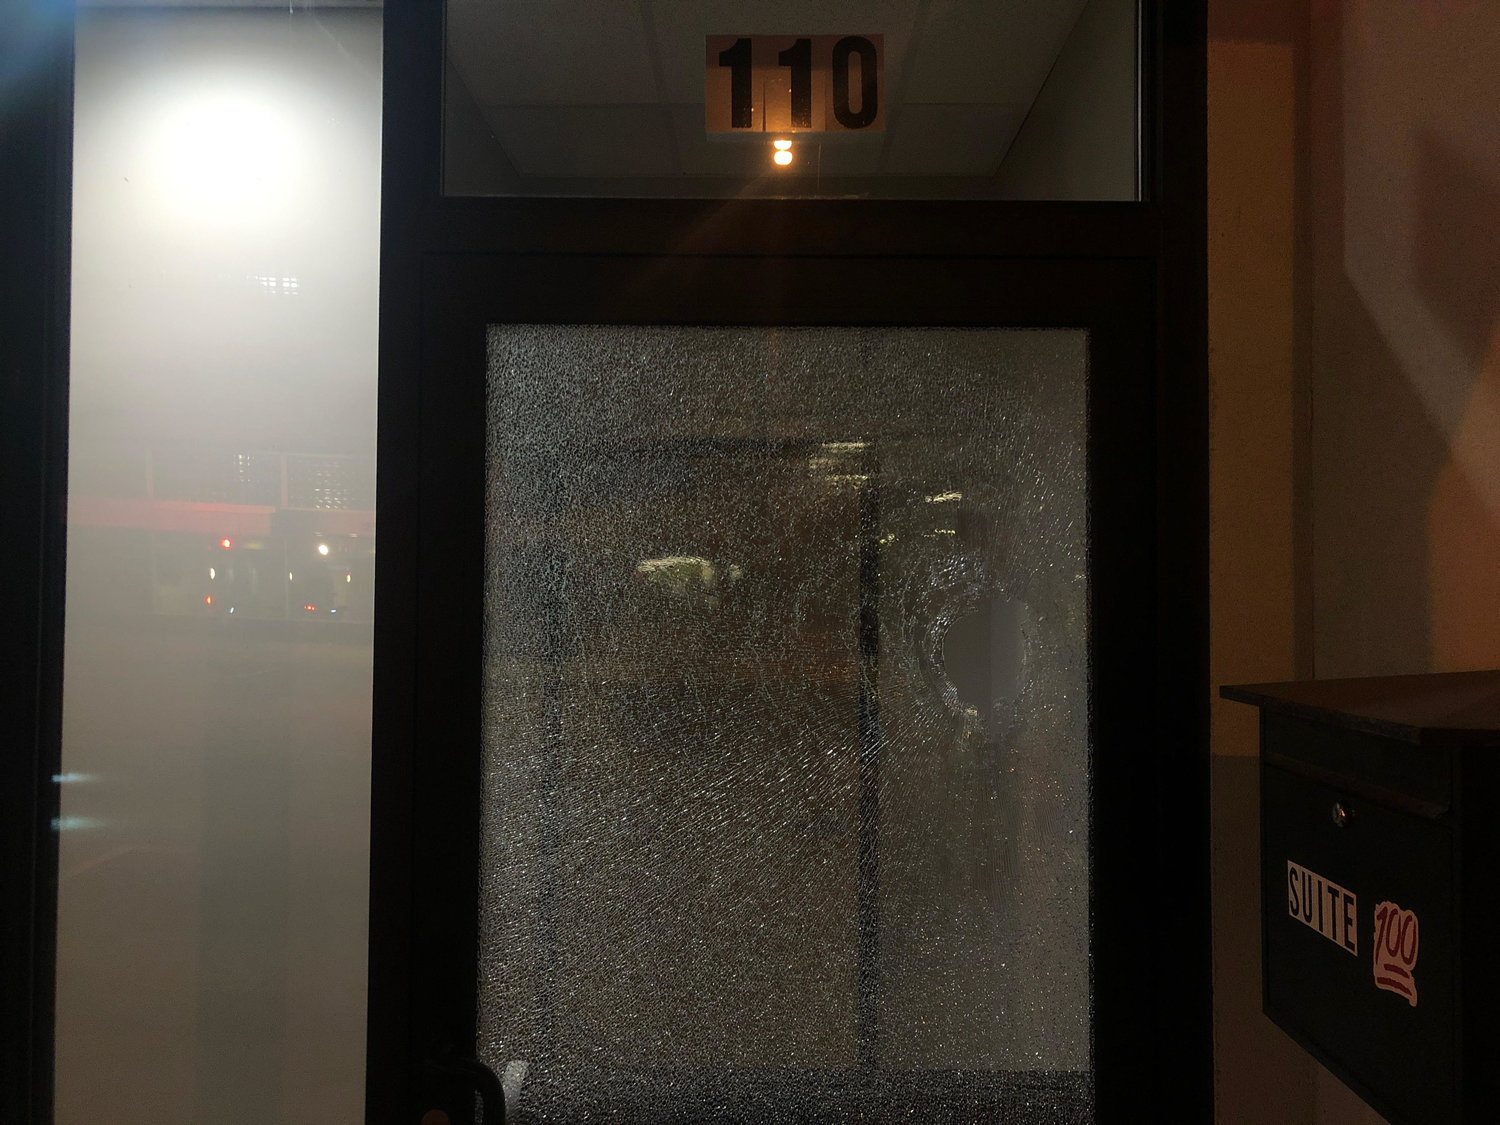 Smashed glass at 110 Washtenaw Street.